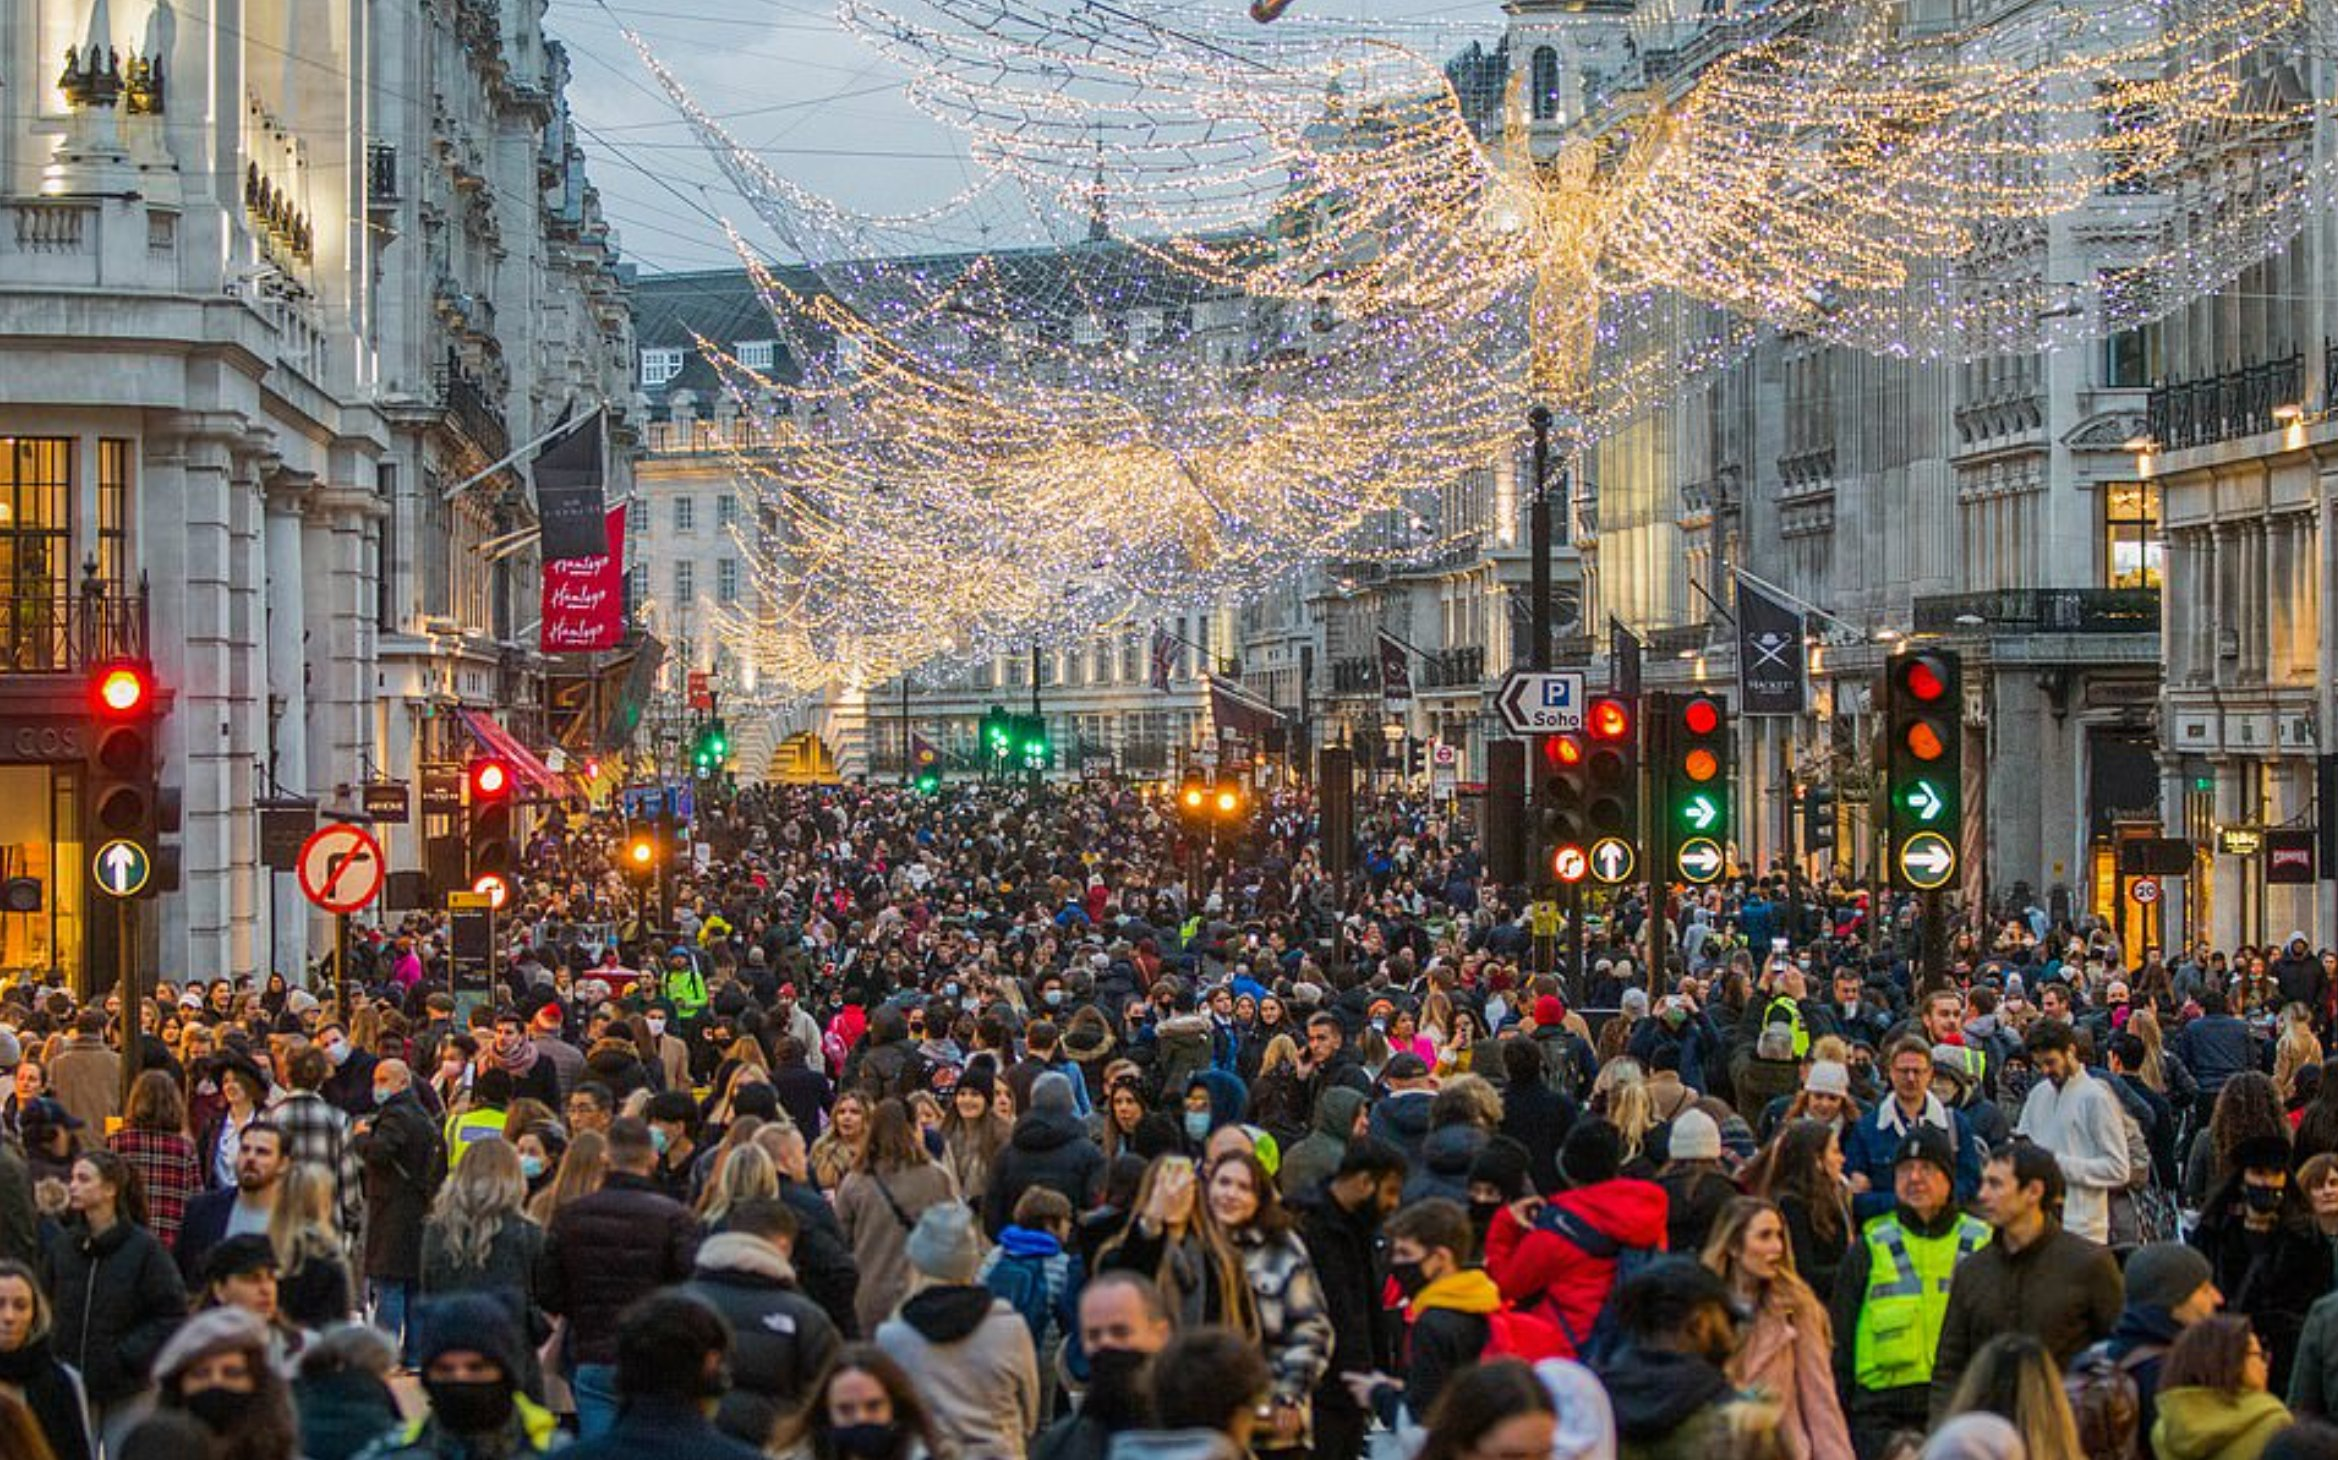 Footfall up almost 20% in first weekend of all of UK out of lockdown